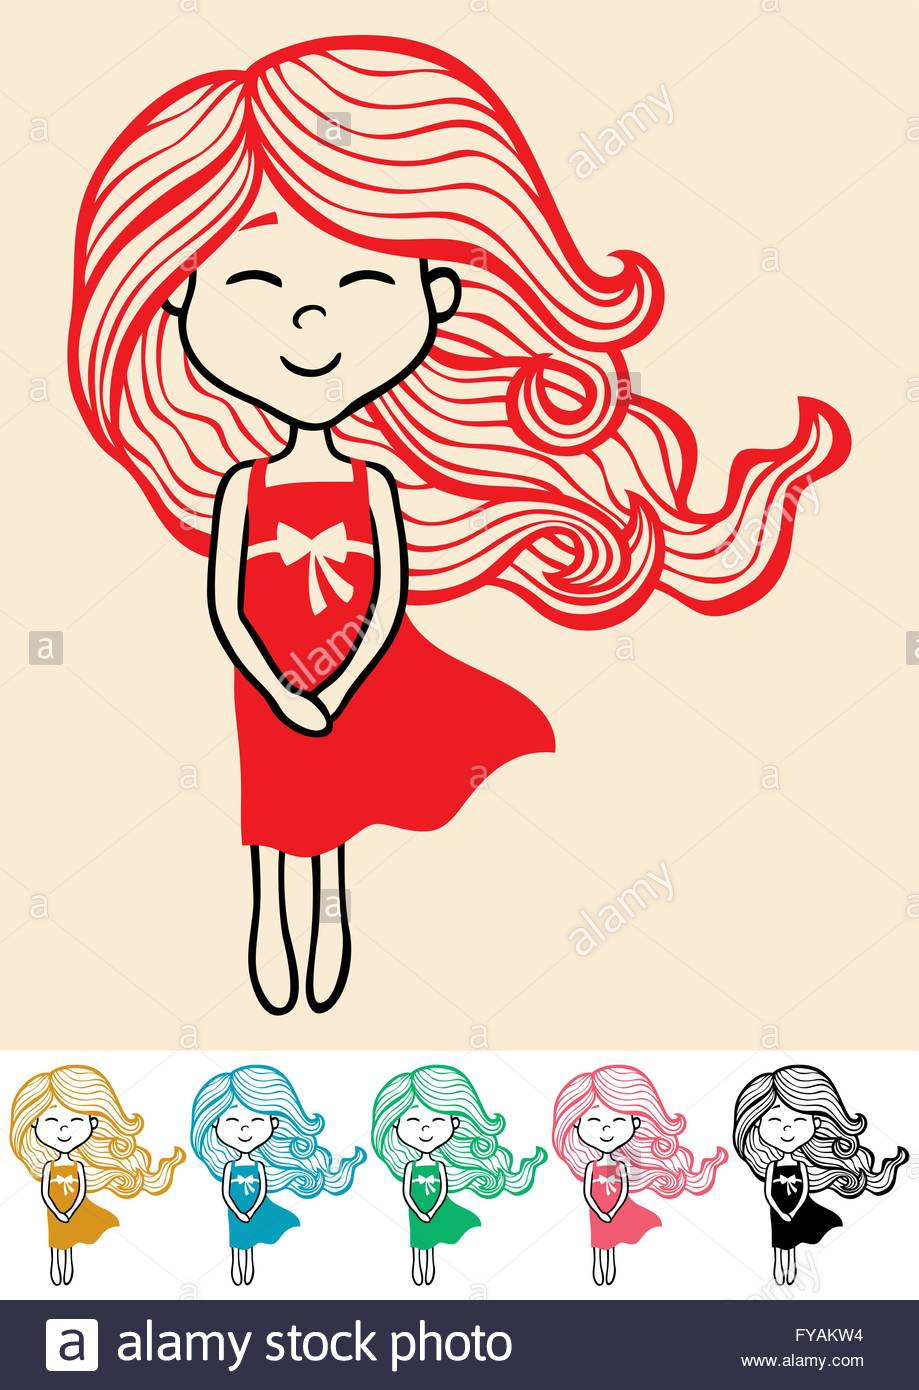 919x1390 Hand Drawn Little Girl In 6 Color Versions Stock Vector Art